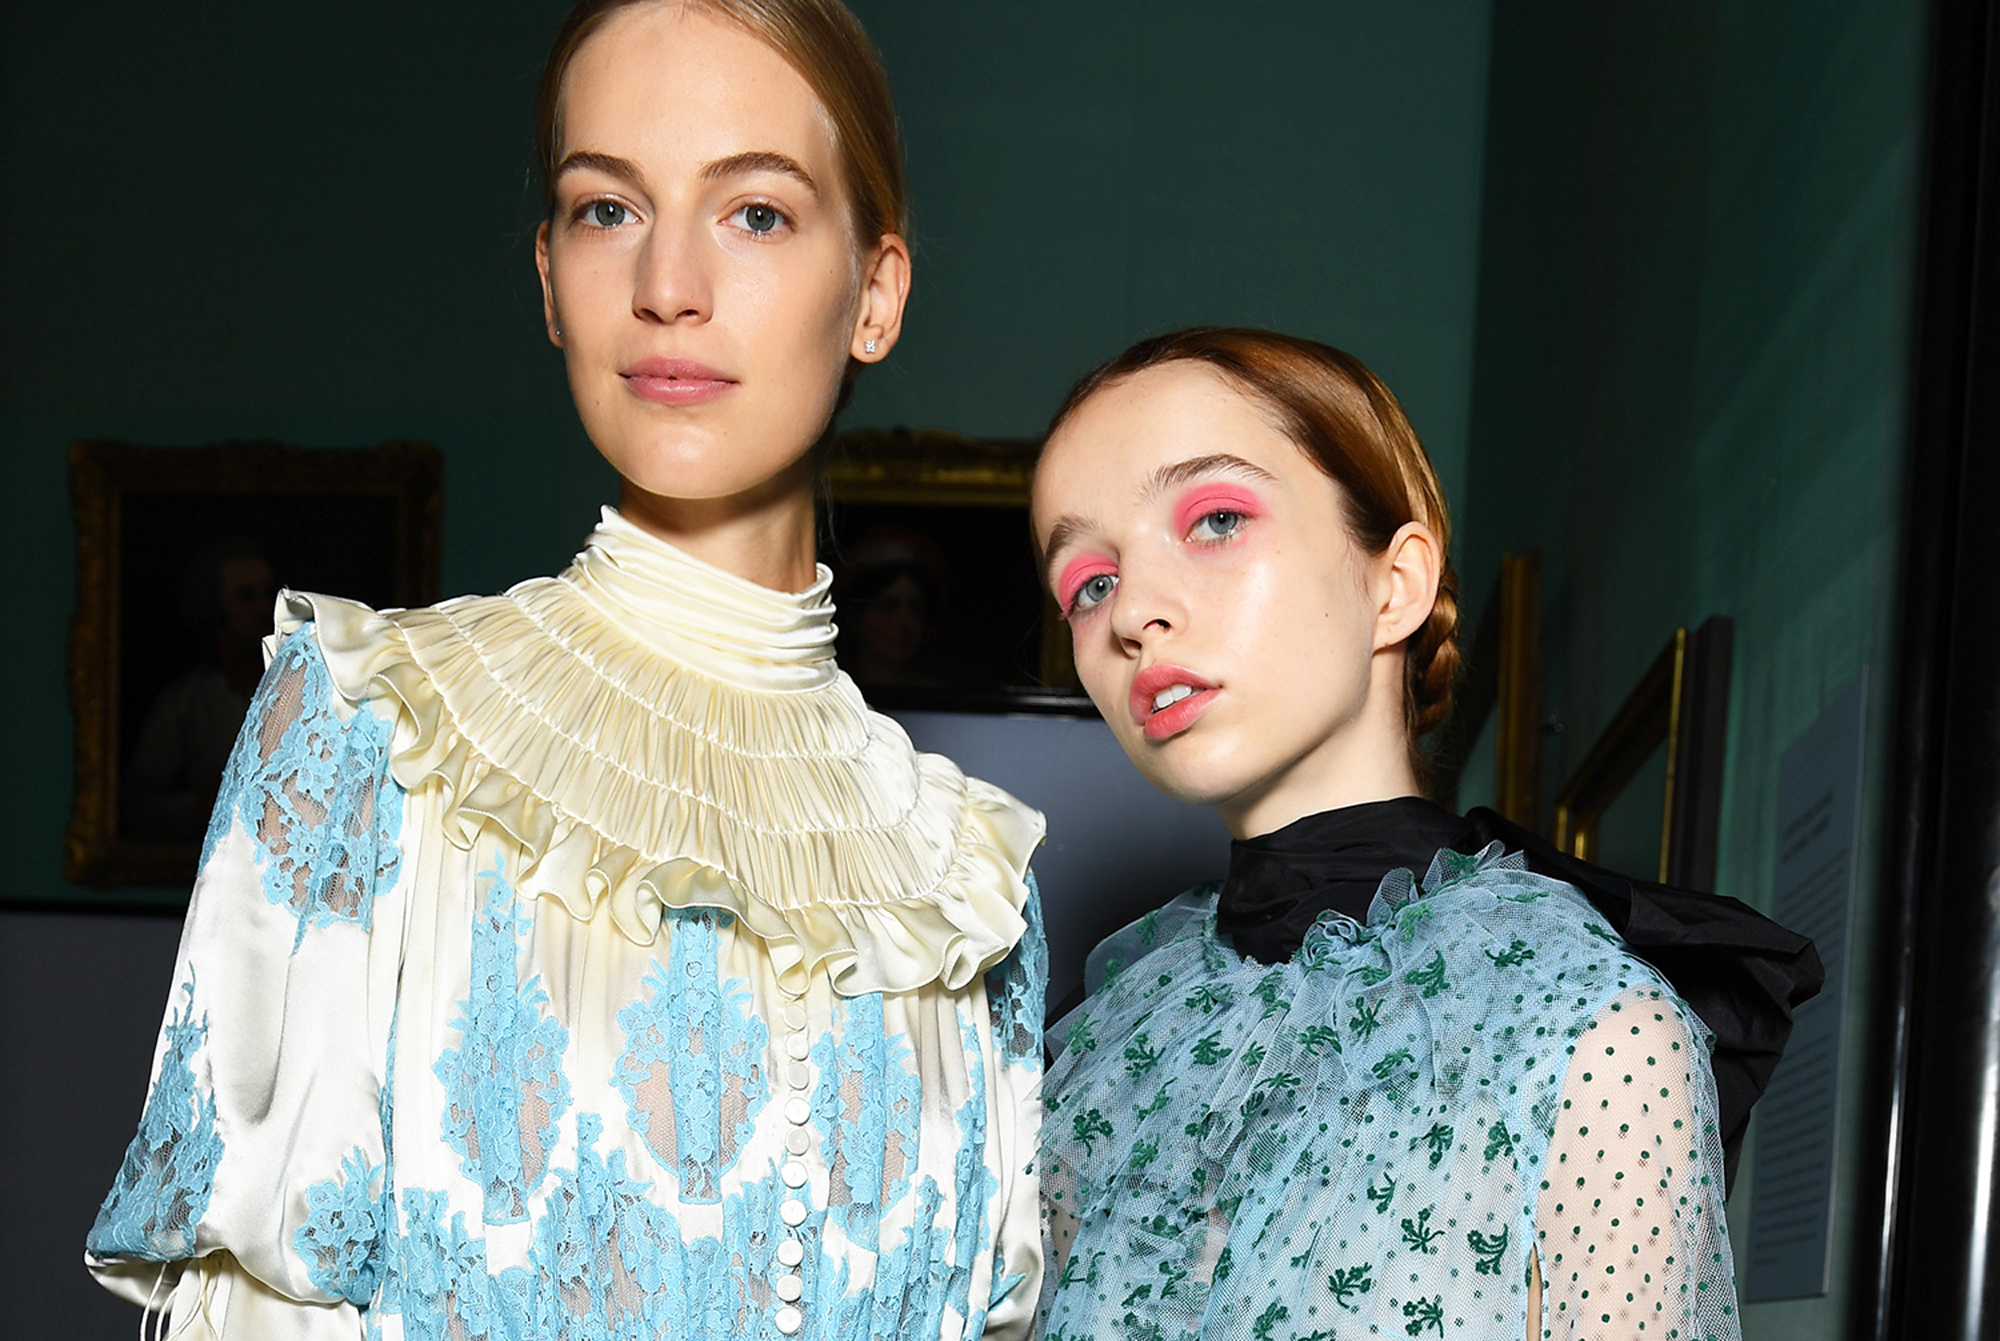 models backstage at Erdem SS19 wearing Nars make-up